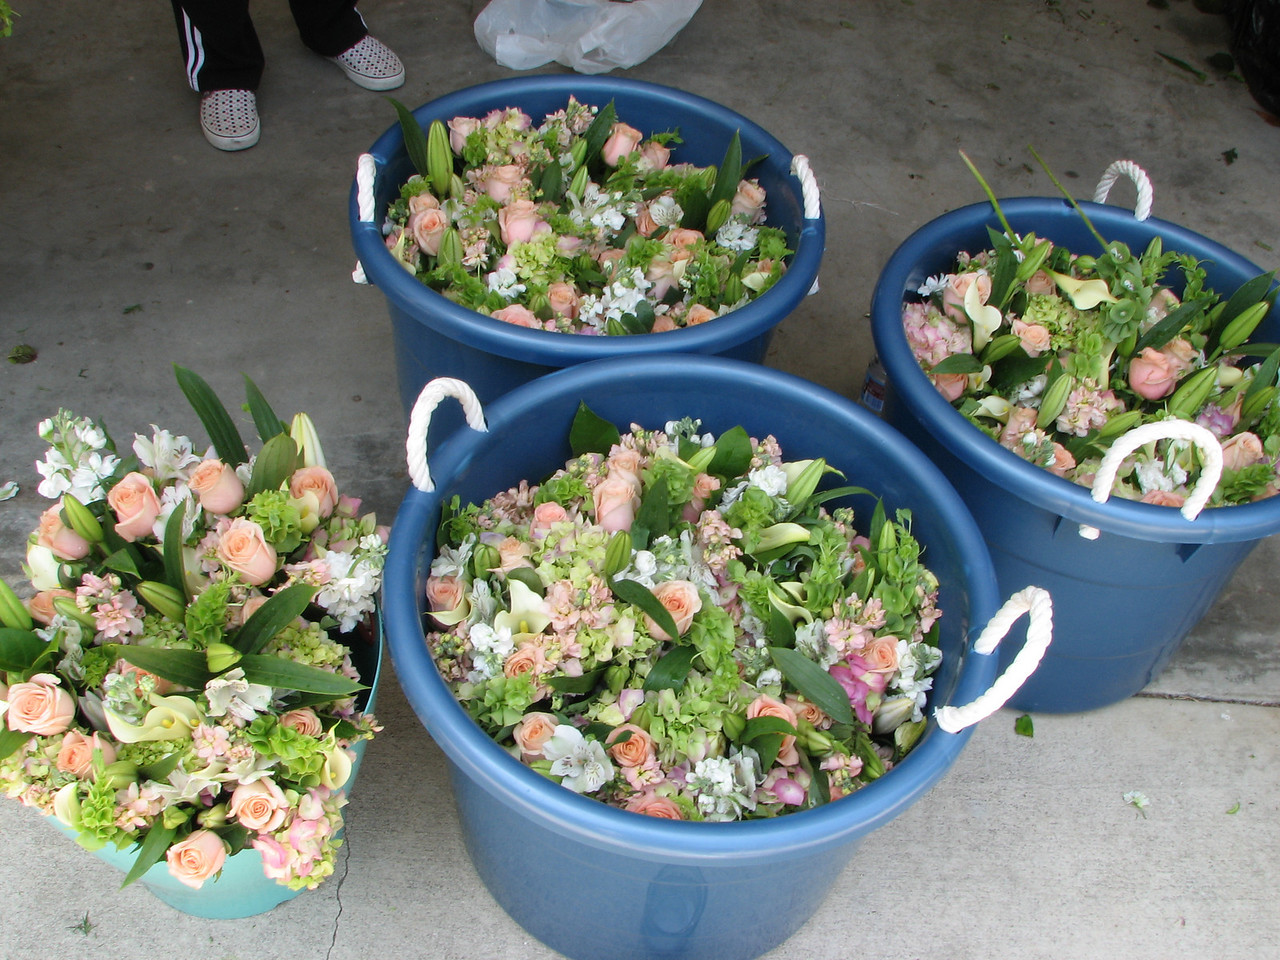 2007 06 09 Sat - Pew bouquets awaiting prep